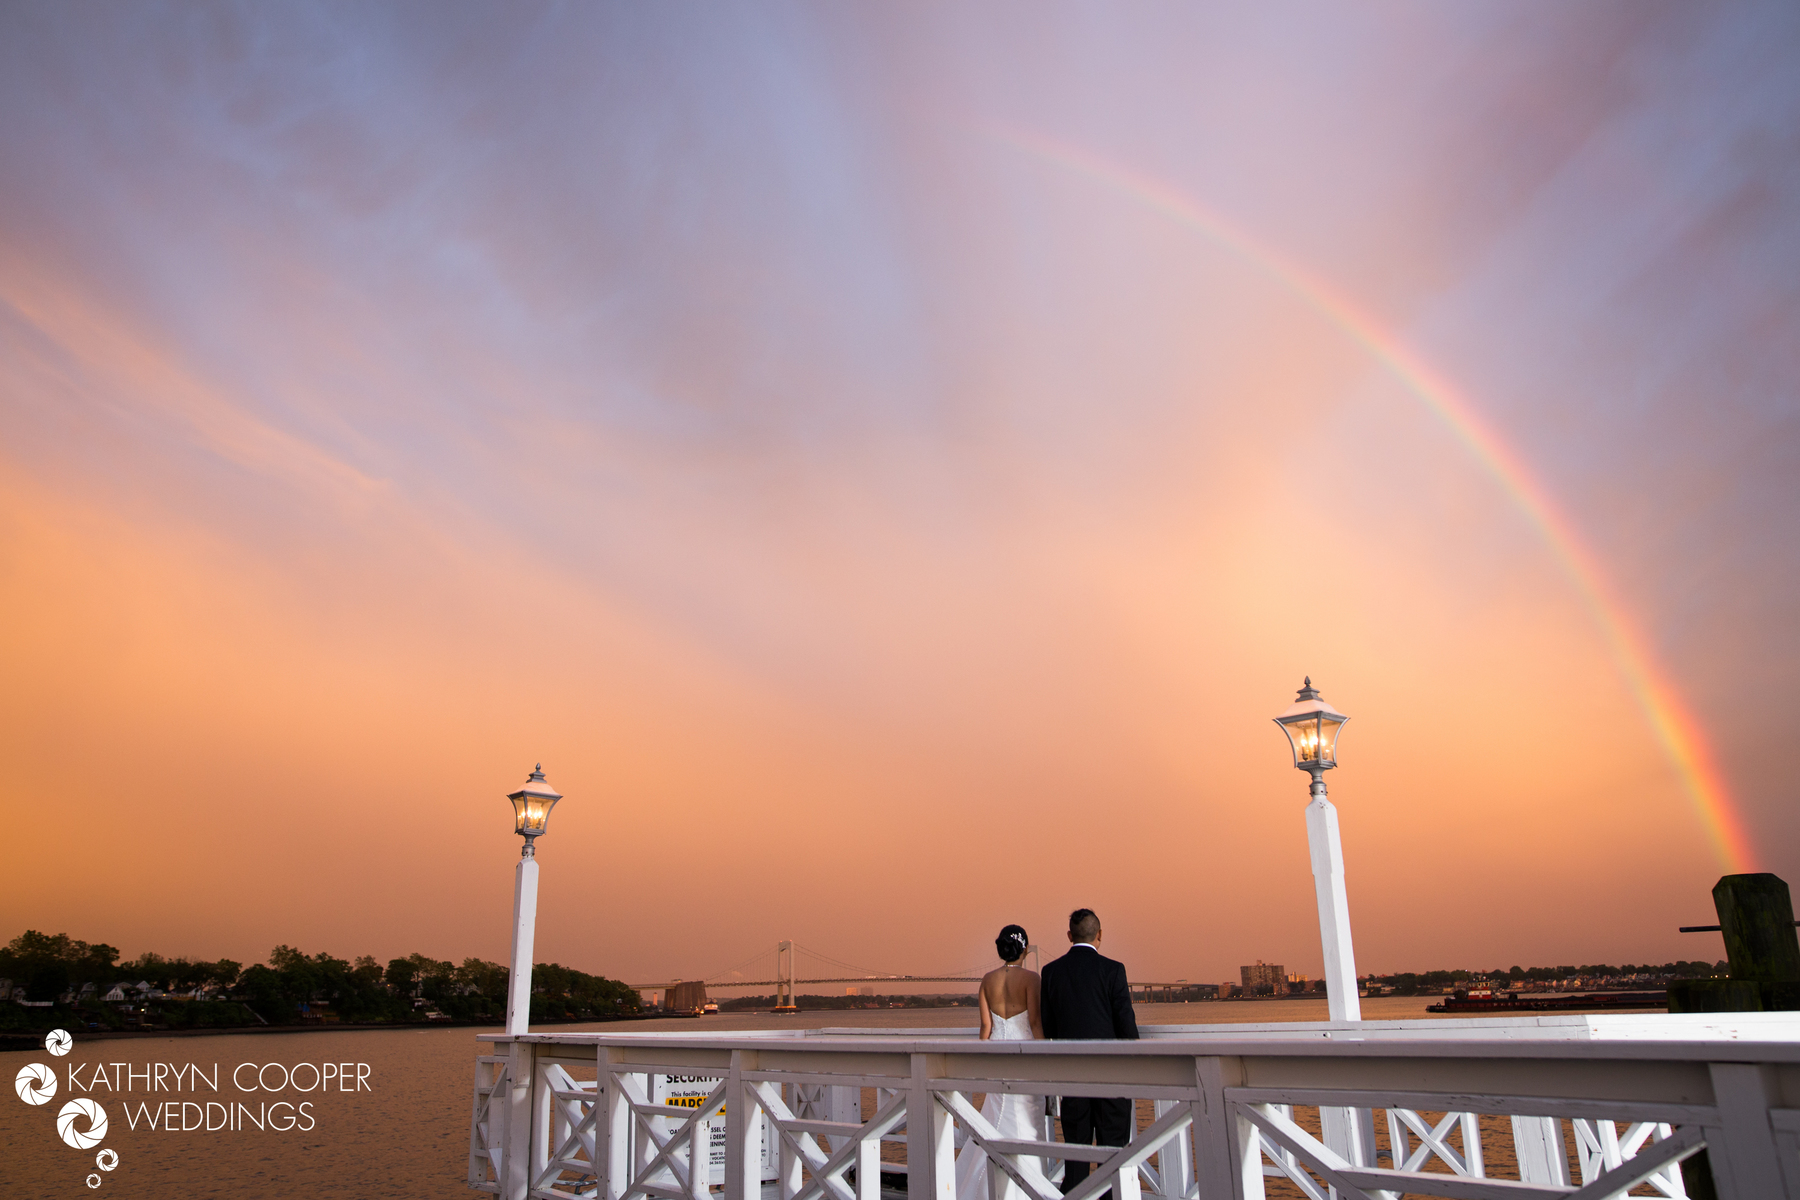 NYC elopement photographer in Bronx captures couple standing under rainbow after NYC storm